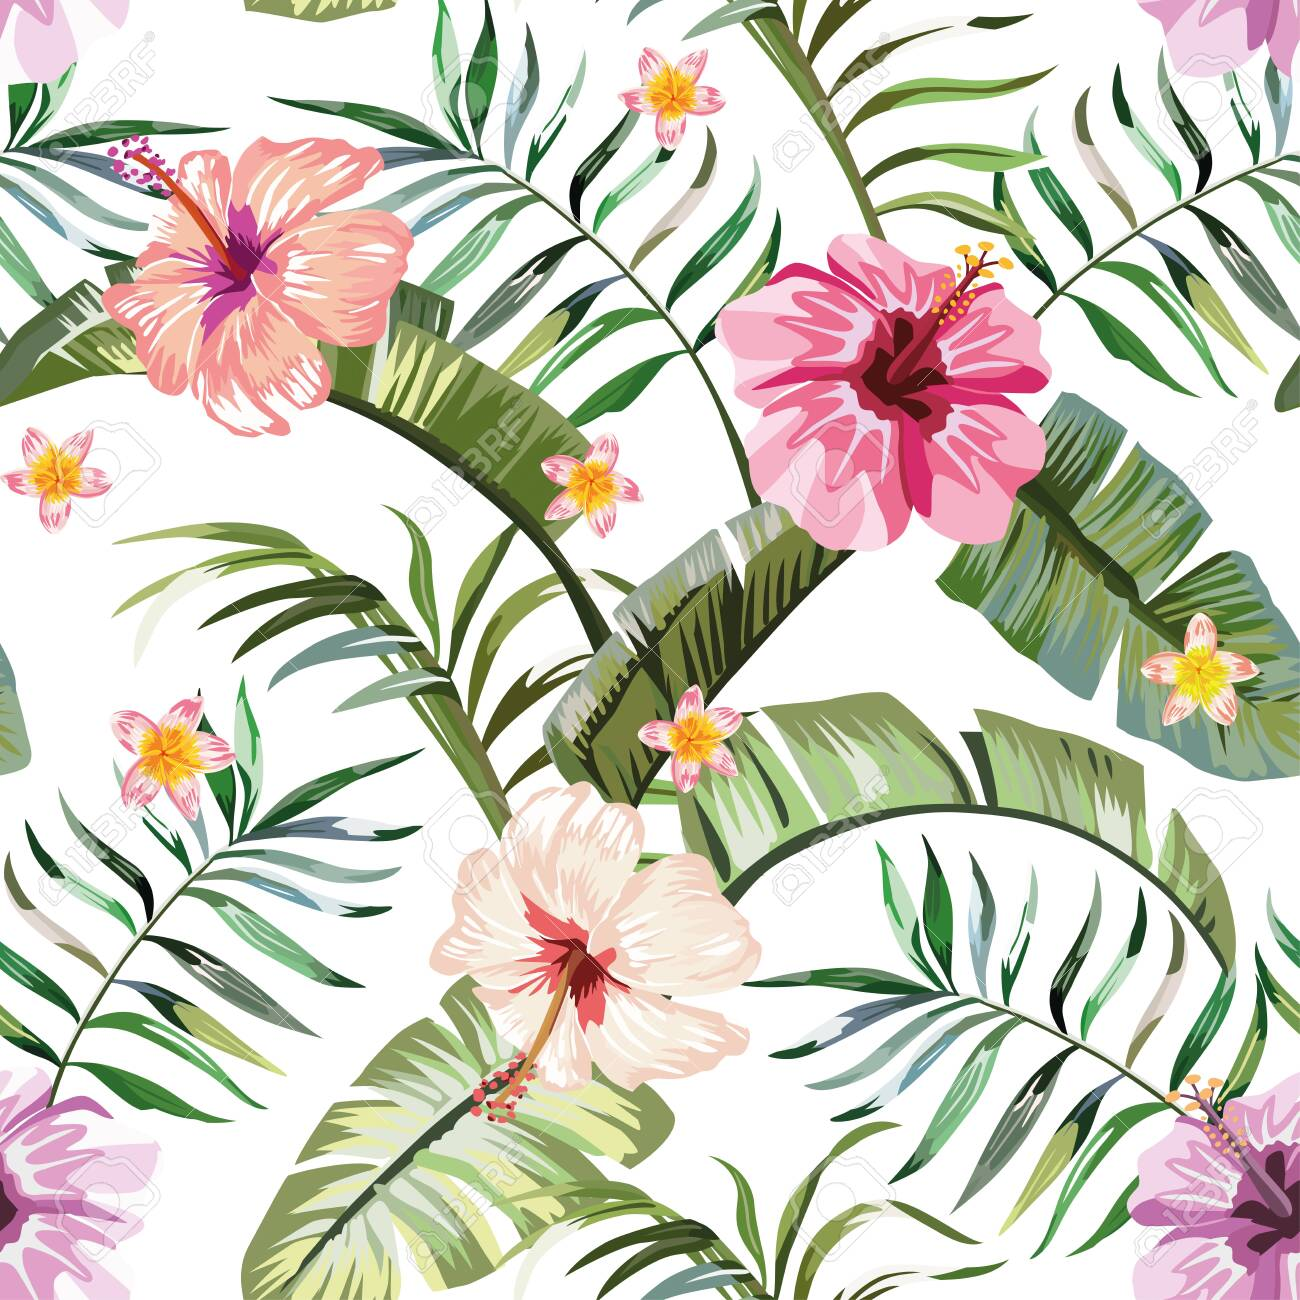 Floral 10x15 FT Photo Backdrops,Exotic Hibiscus Petals in Warm Tones Beach Palm Tree Wild Dreamy Tropical Graphic Background for Child Baby Shower Photo Vinyl Studio Prop Photobooth Photoshoot